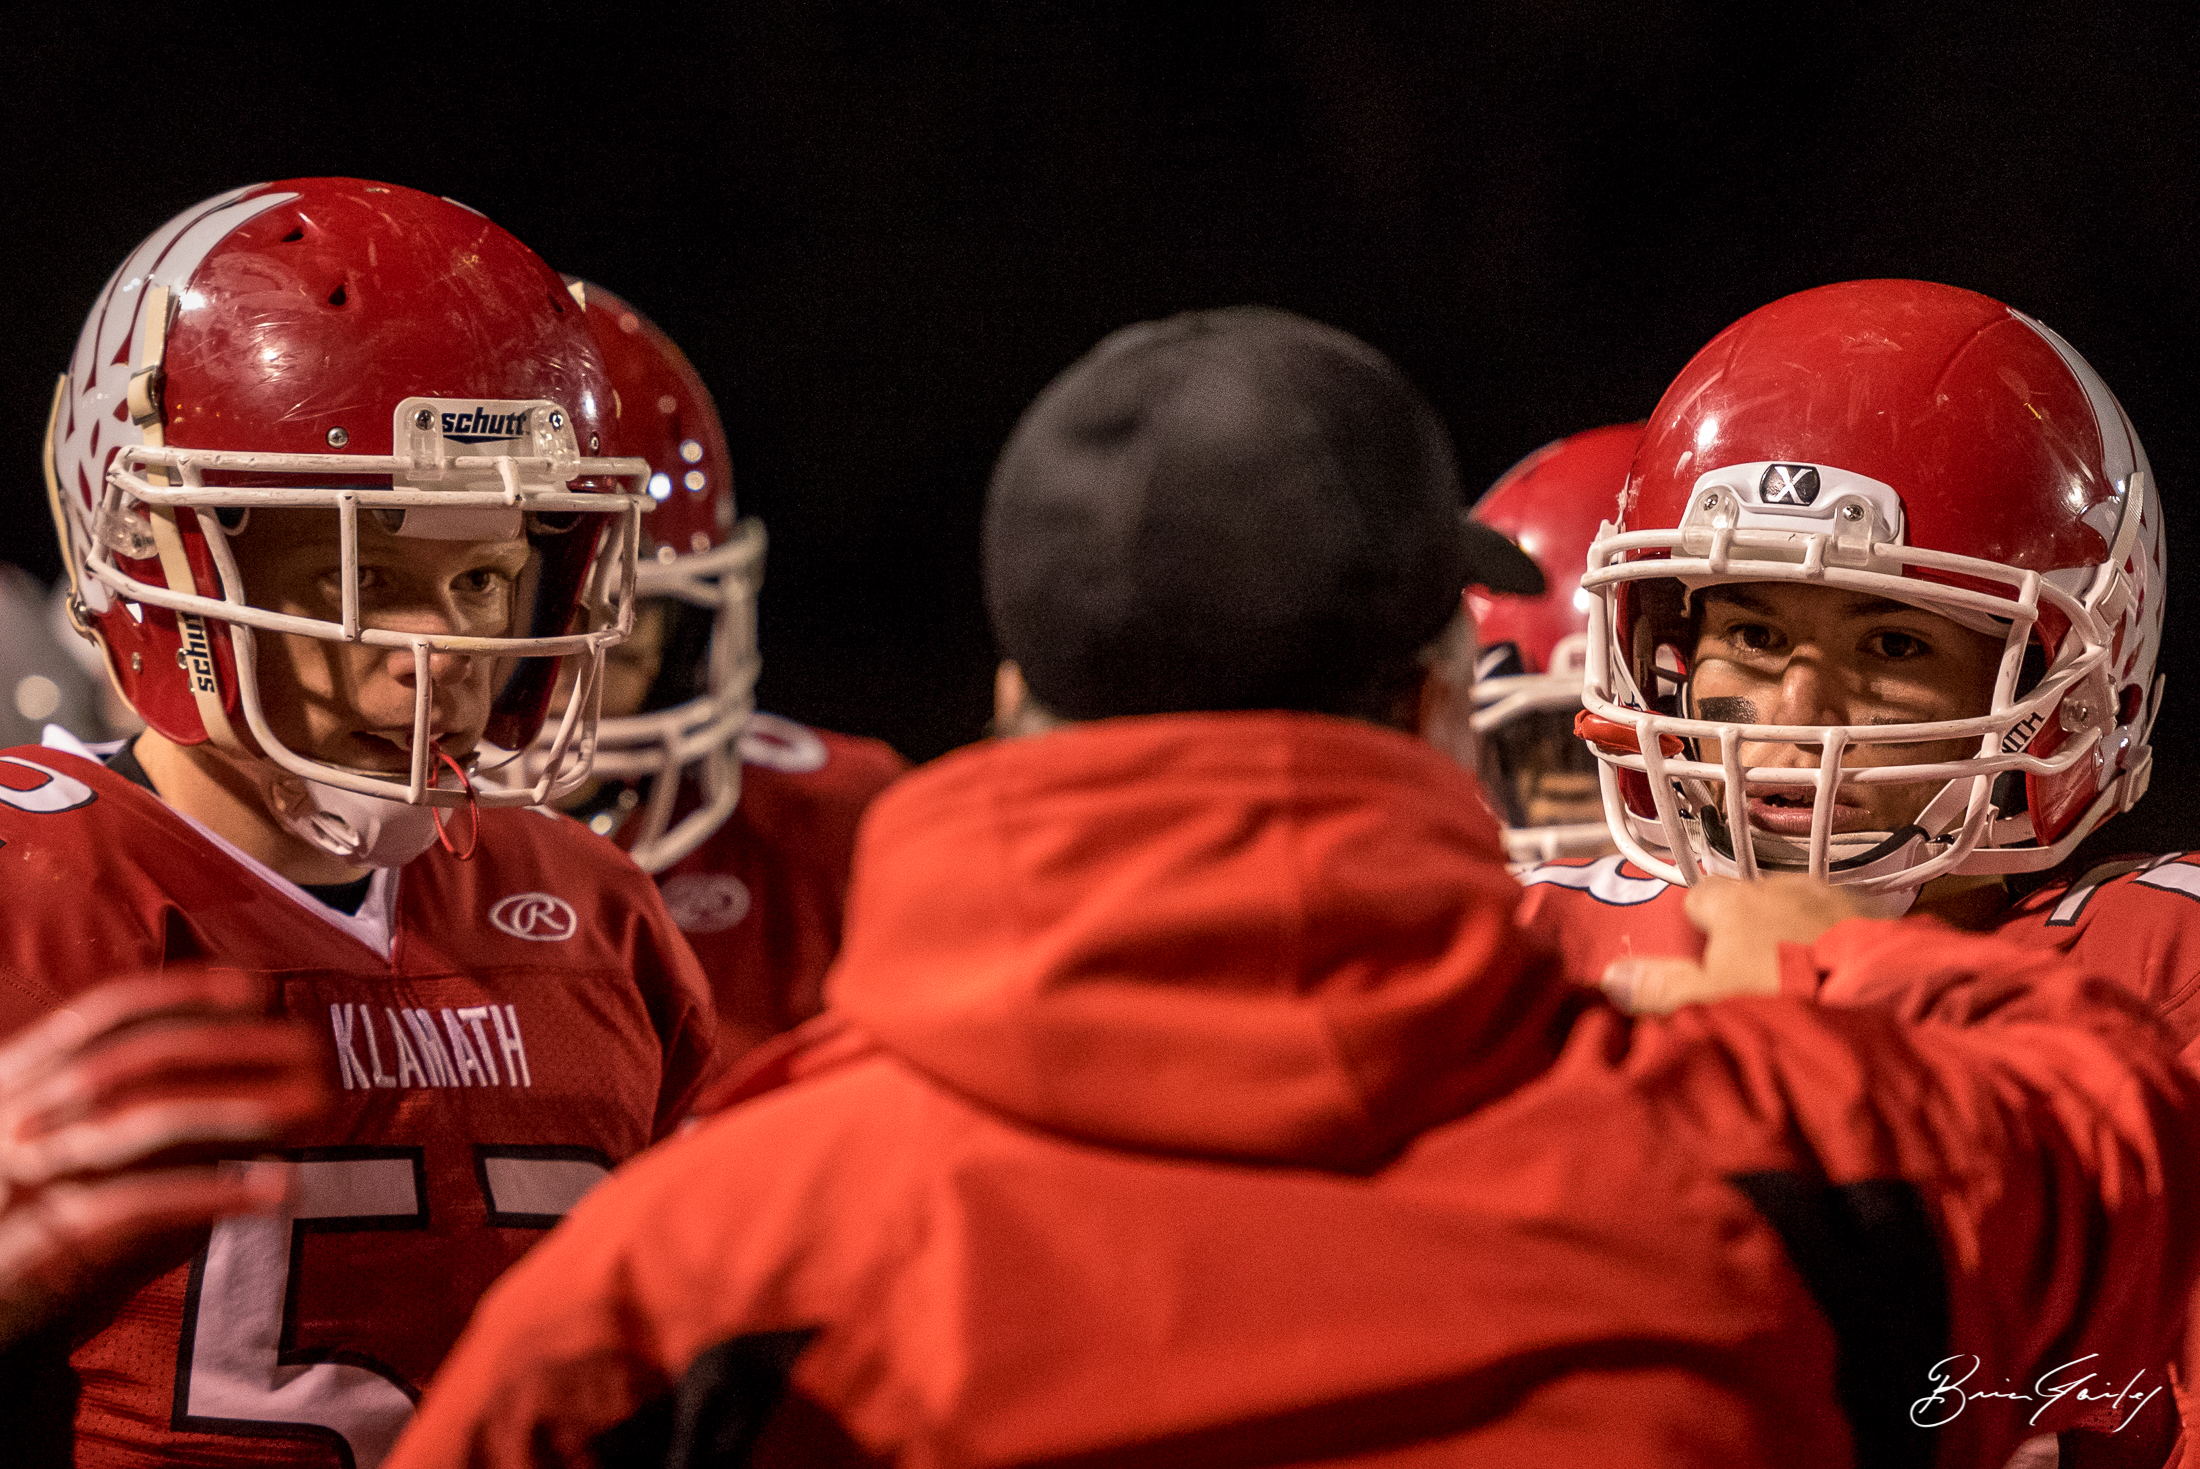 A Klamath Union coach is teaching up his players before heading back on the field.